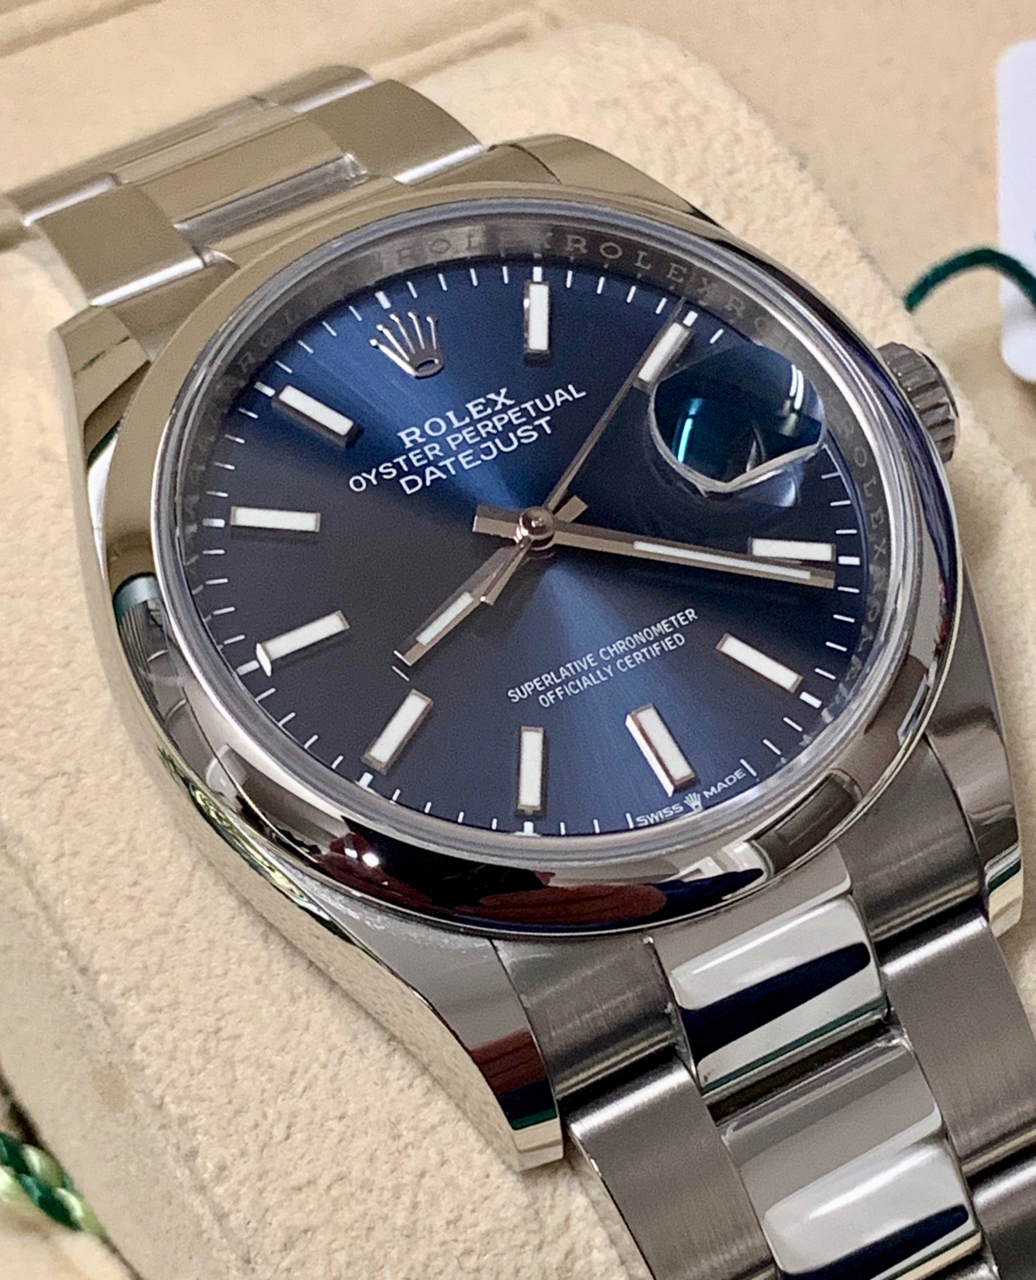 Rolex Datejust 36mm in Oyster Steel, the latest model ref 126200 on Oyster  Bracelet Ca. 2019 with Box and Papers